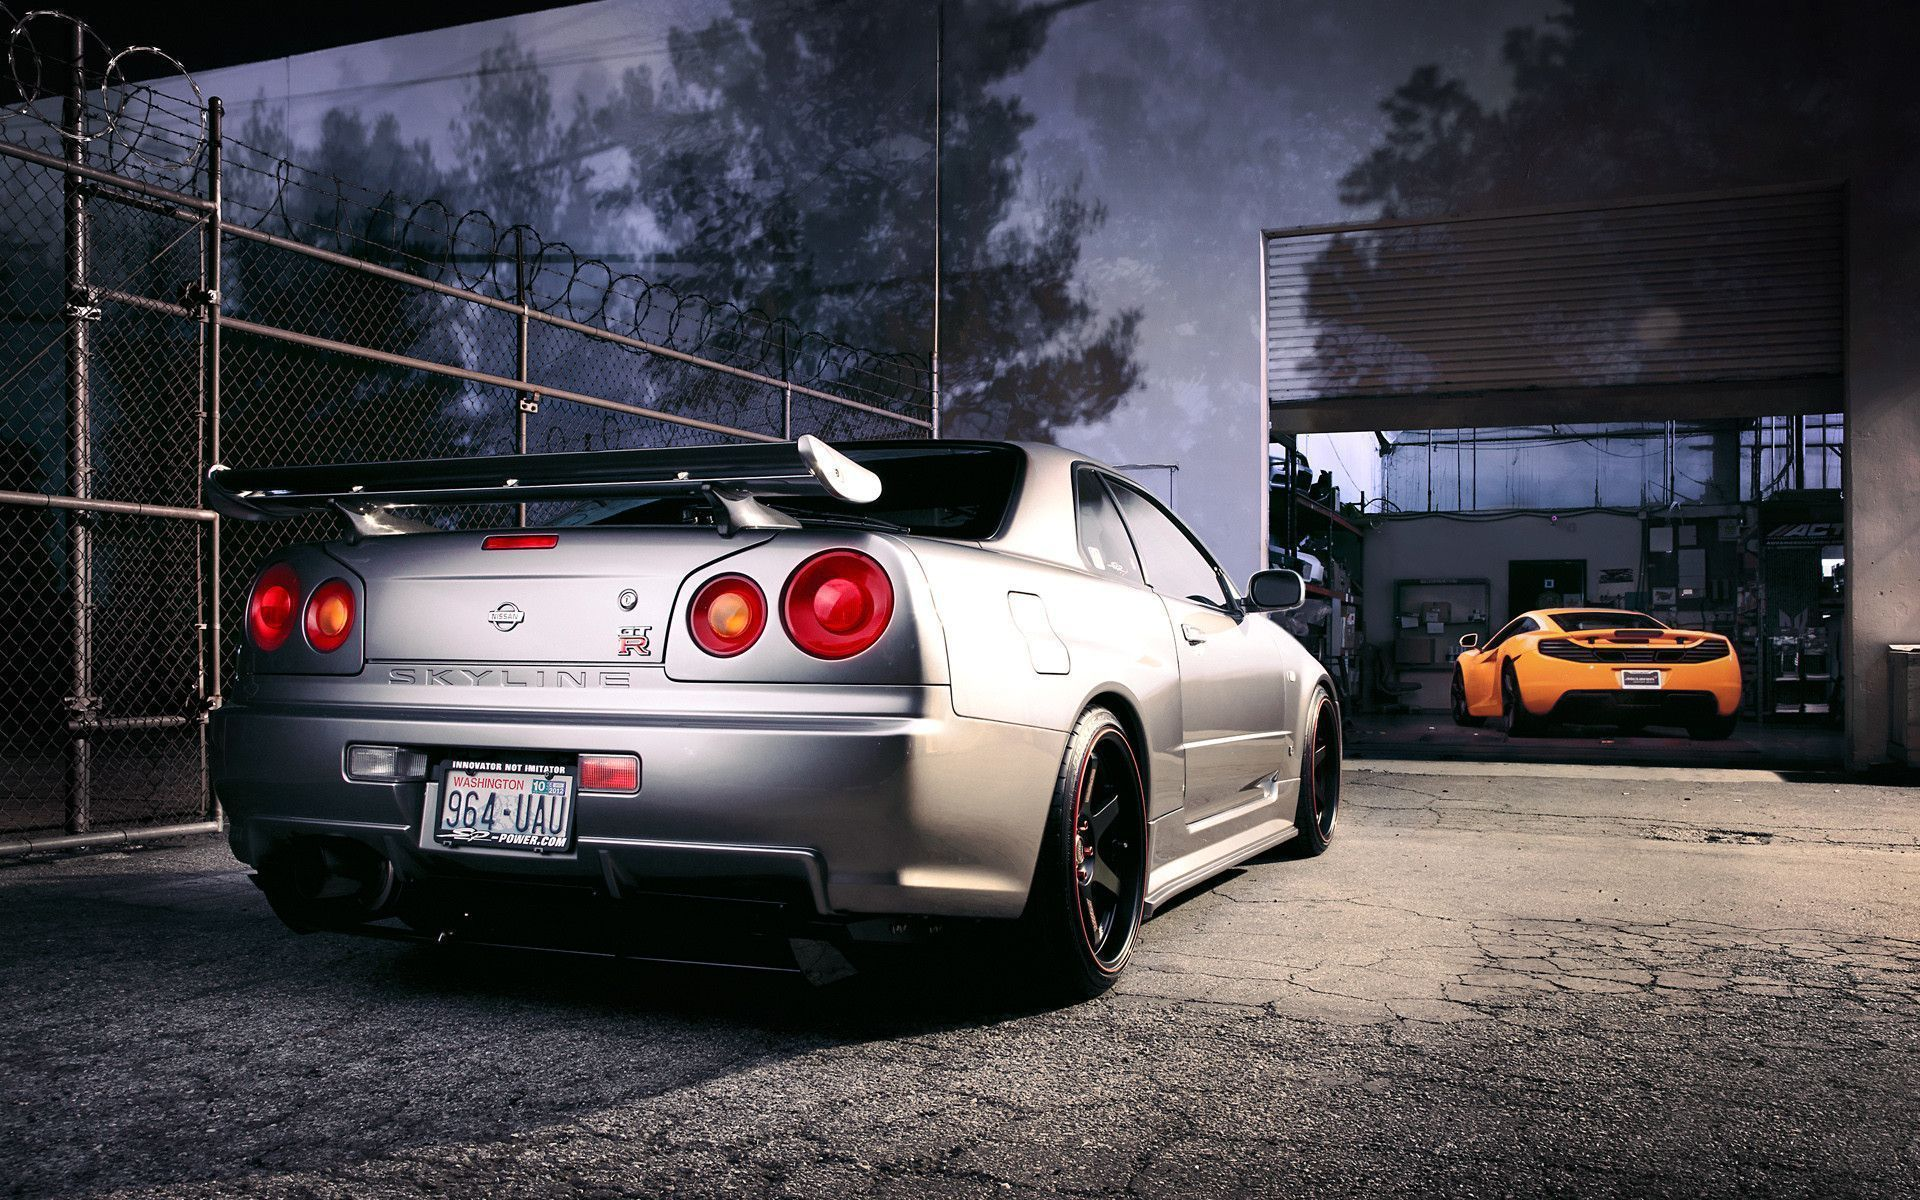 Nissan r34 skyline gt r pictures car hd wallpapers i have nissan r34 skyline gt r pictures car hd wallpapers vanachro Images